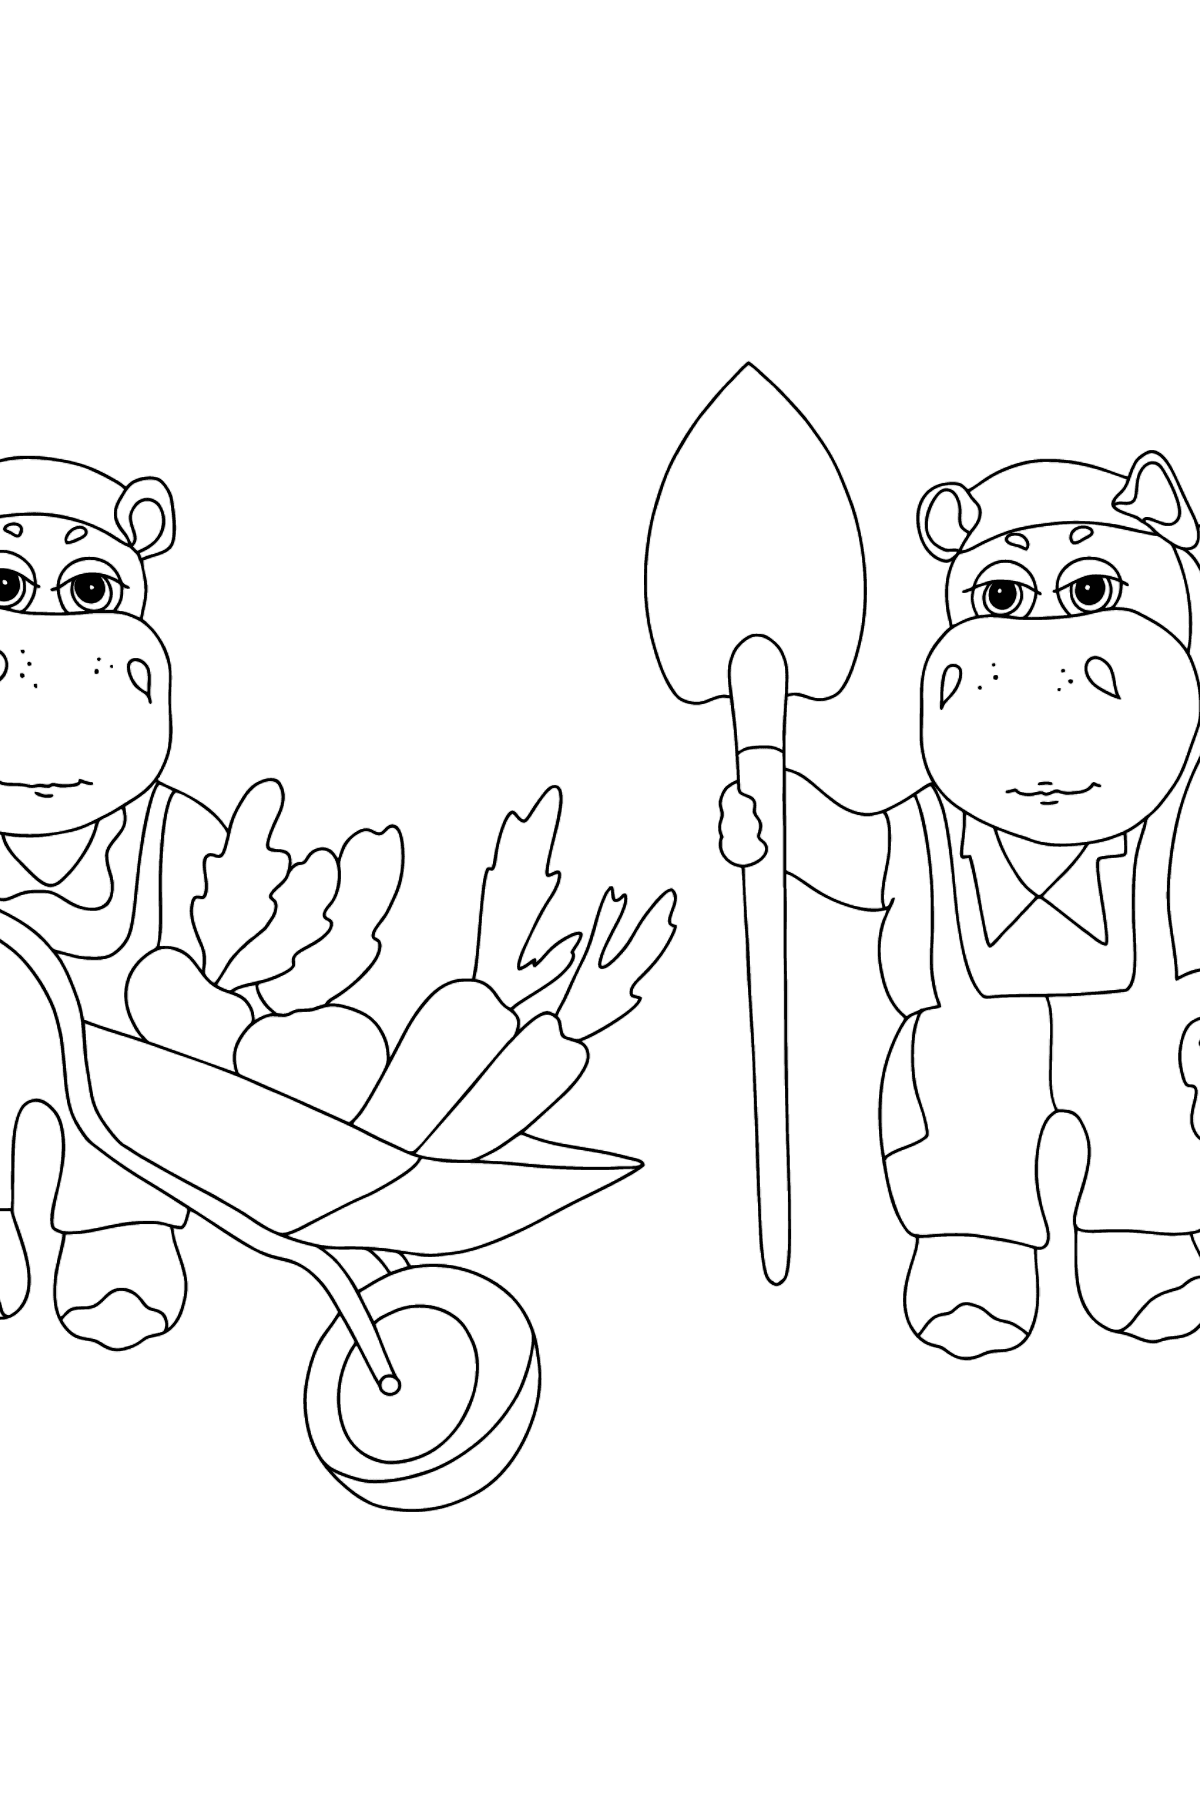 Coloring Page - Hippos are Harvesting a Big Crop - Coloring Pages for Kids